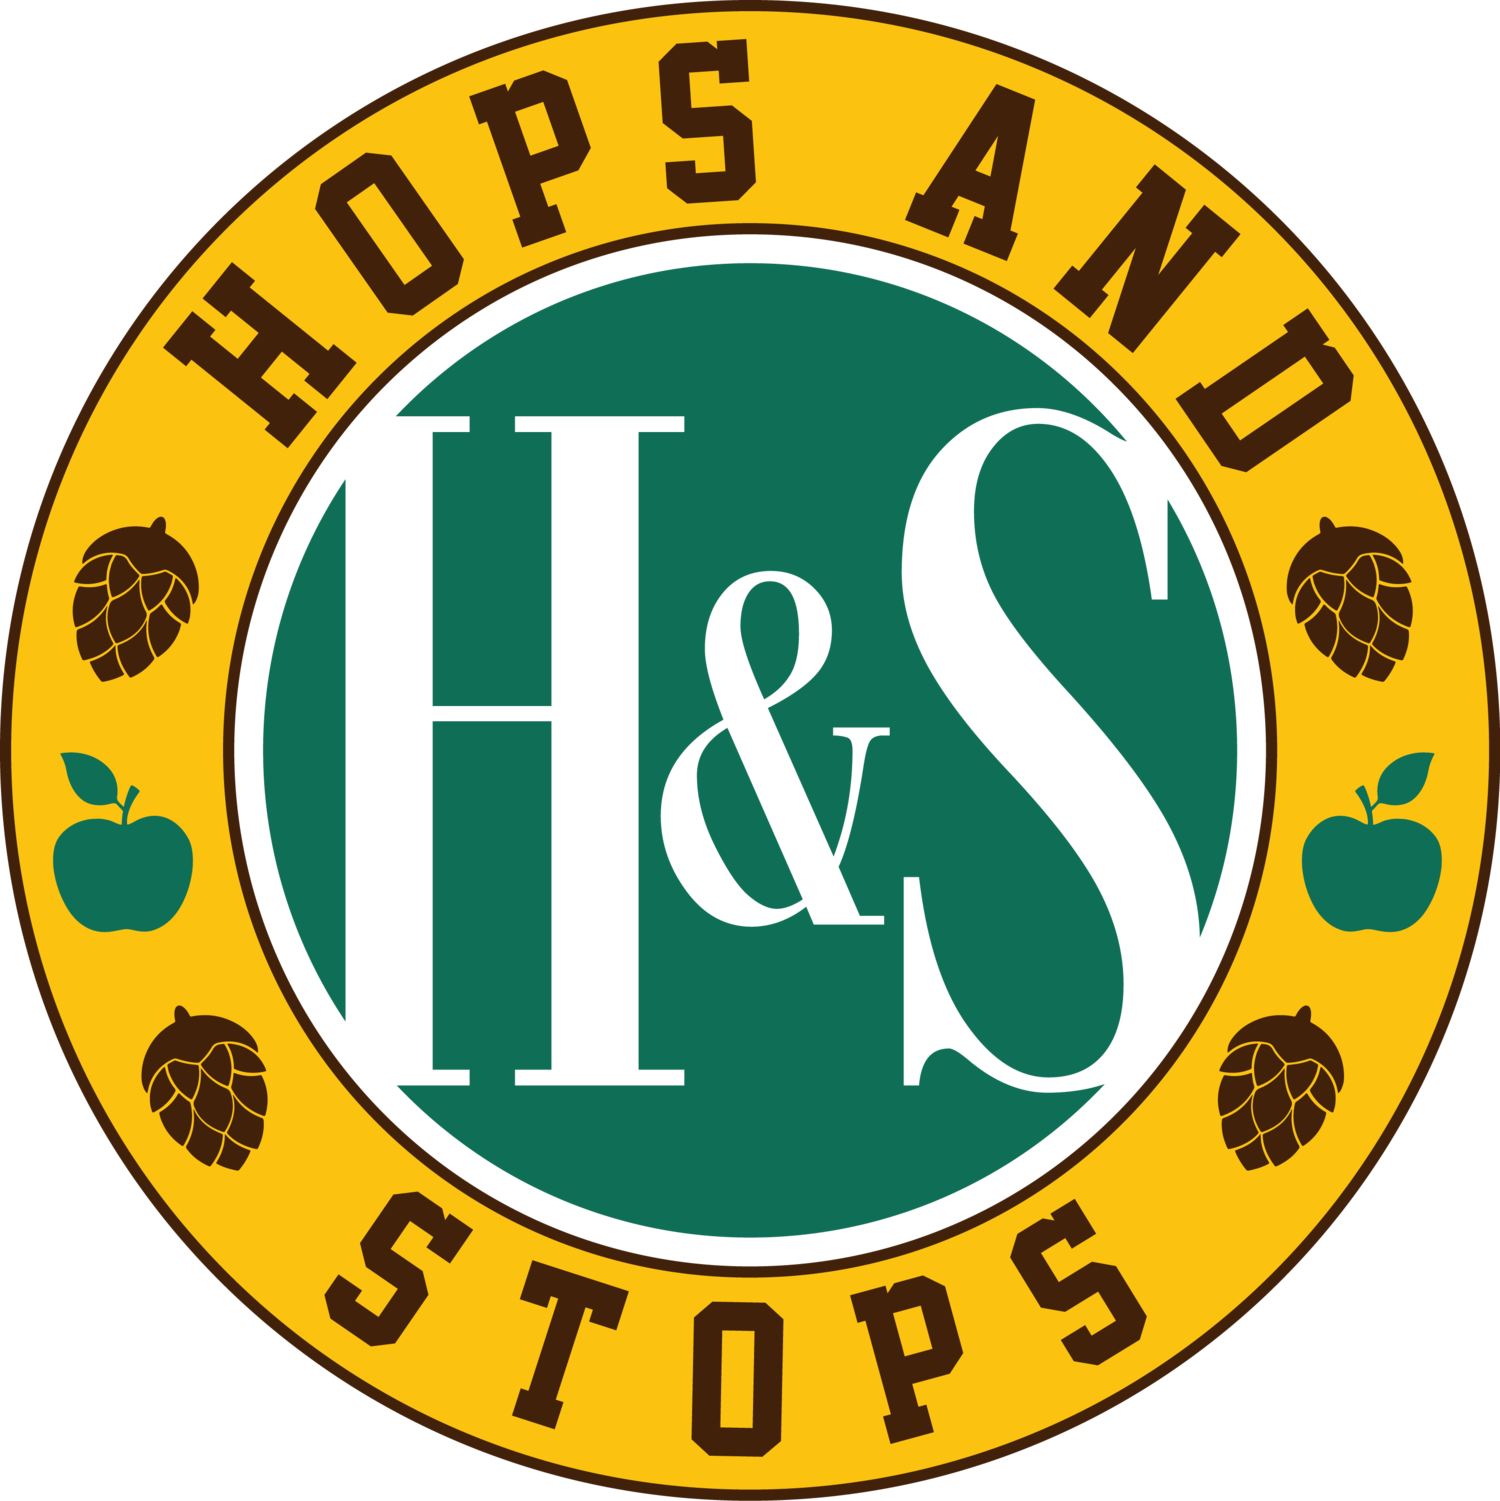 Cousins clipart assembly. Hops and stops boston